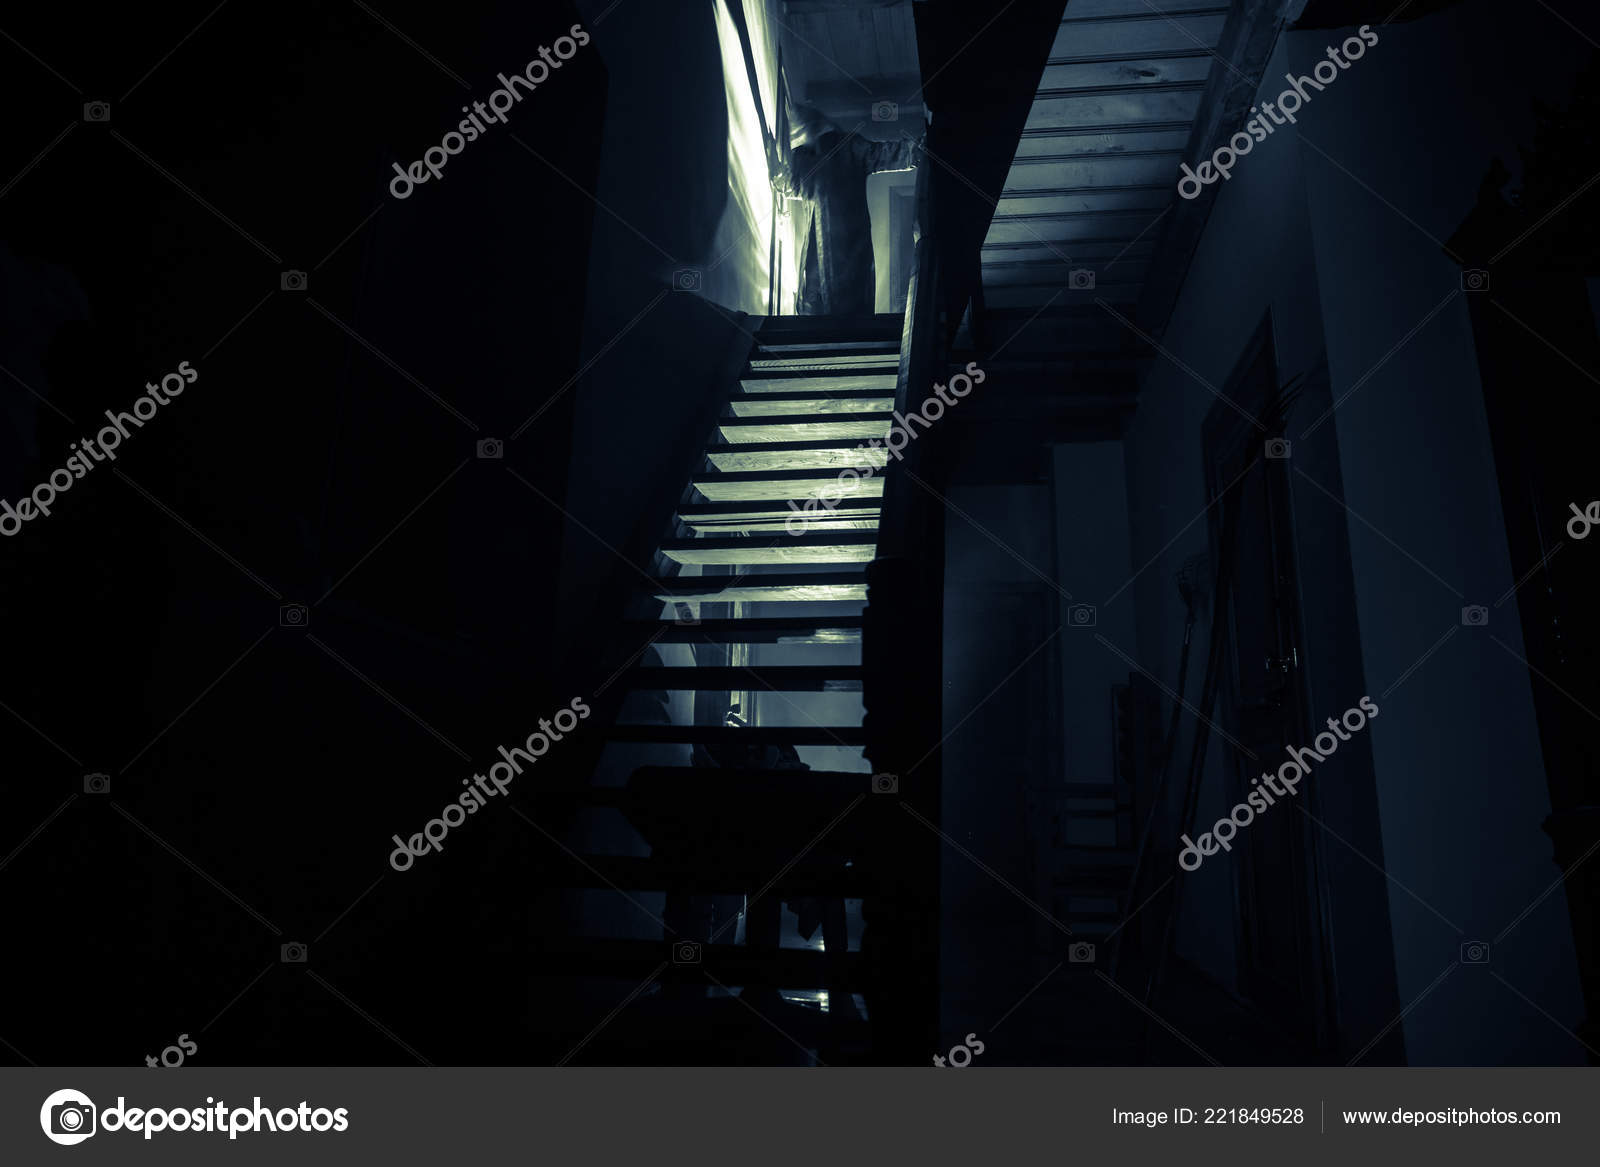 Old Creepy Abandoned Mansion Silhouette Horror Ghost Standing Castle Stairs Stock Photo C Zeferli Gmail Com 221849528